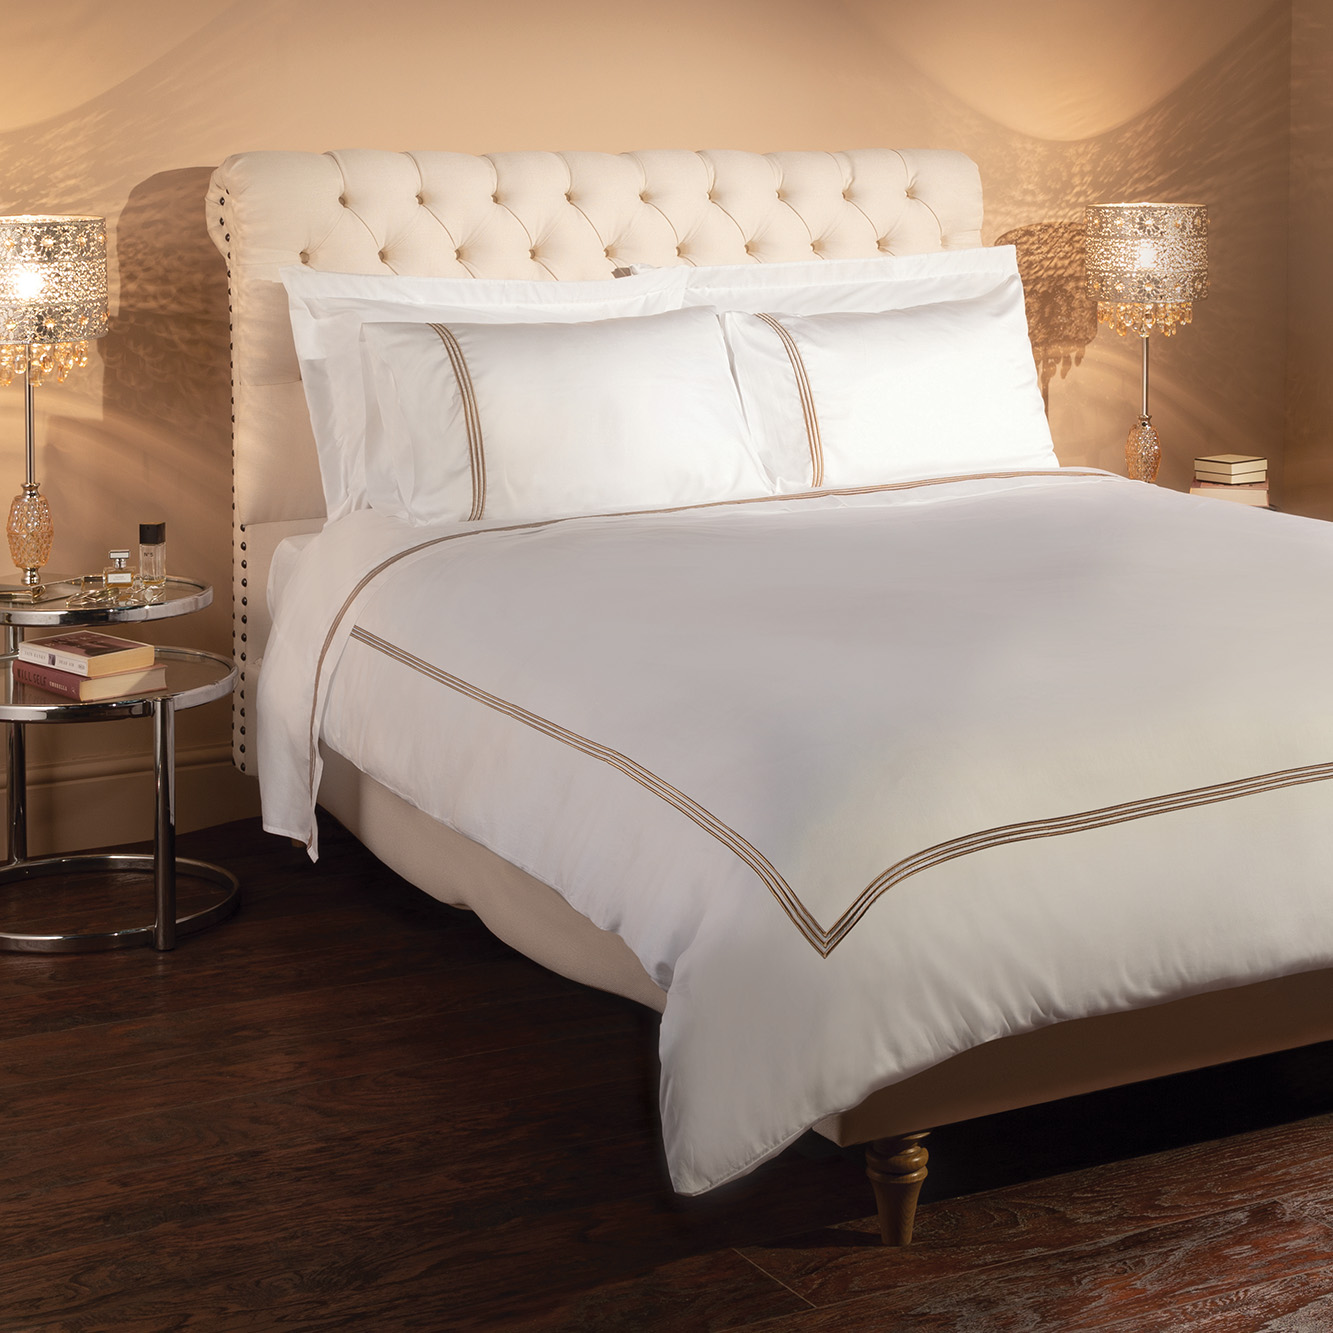 Sicily Luxury Egyptian Cotton 600 Thread Count Embroidered Duvet Cover Mediterranean Linens